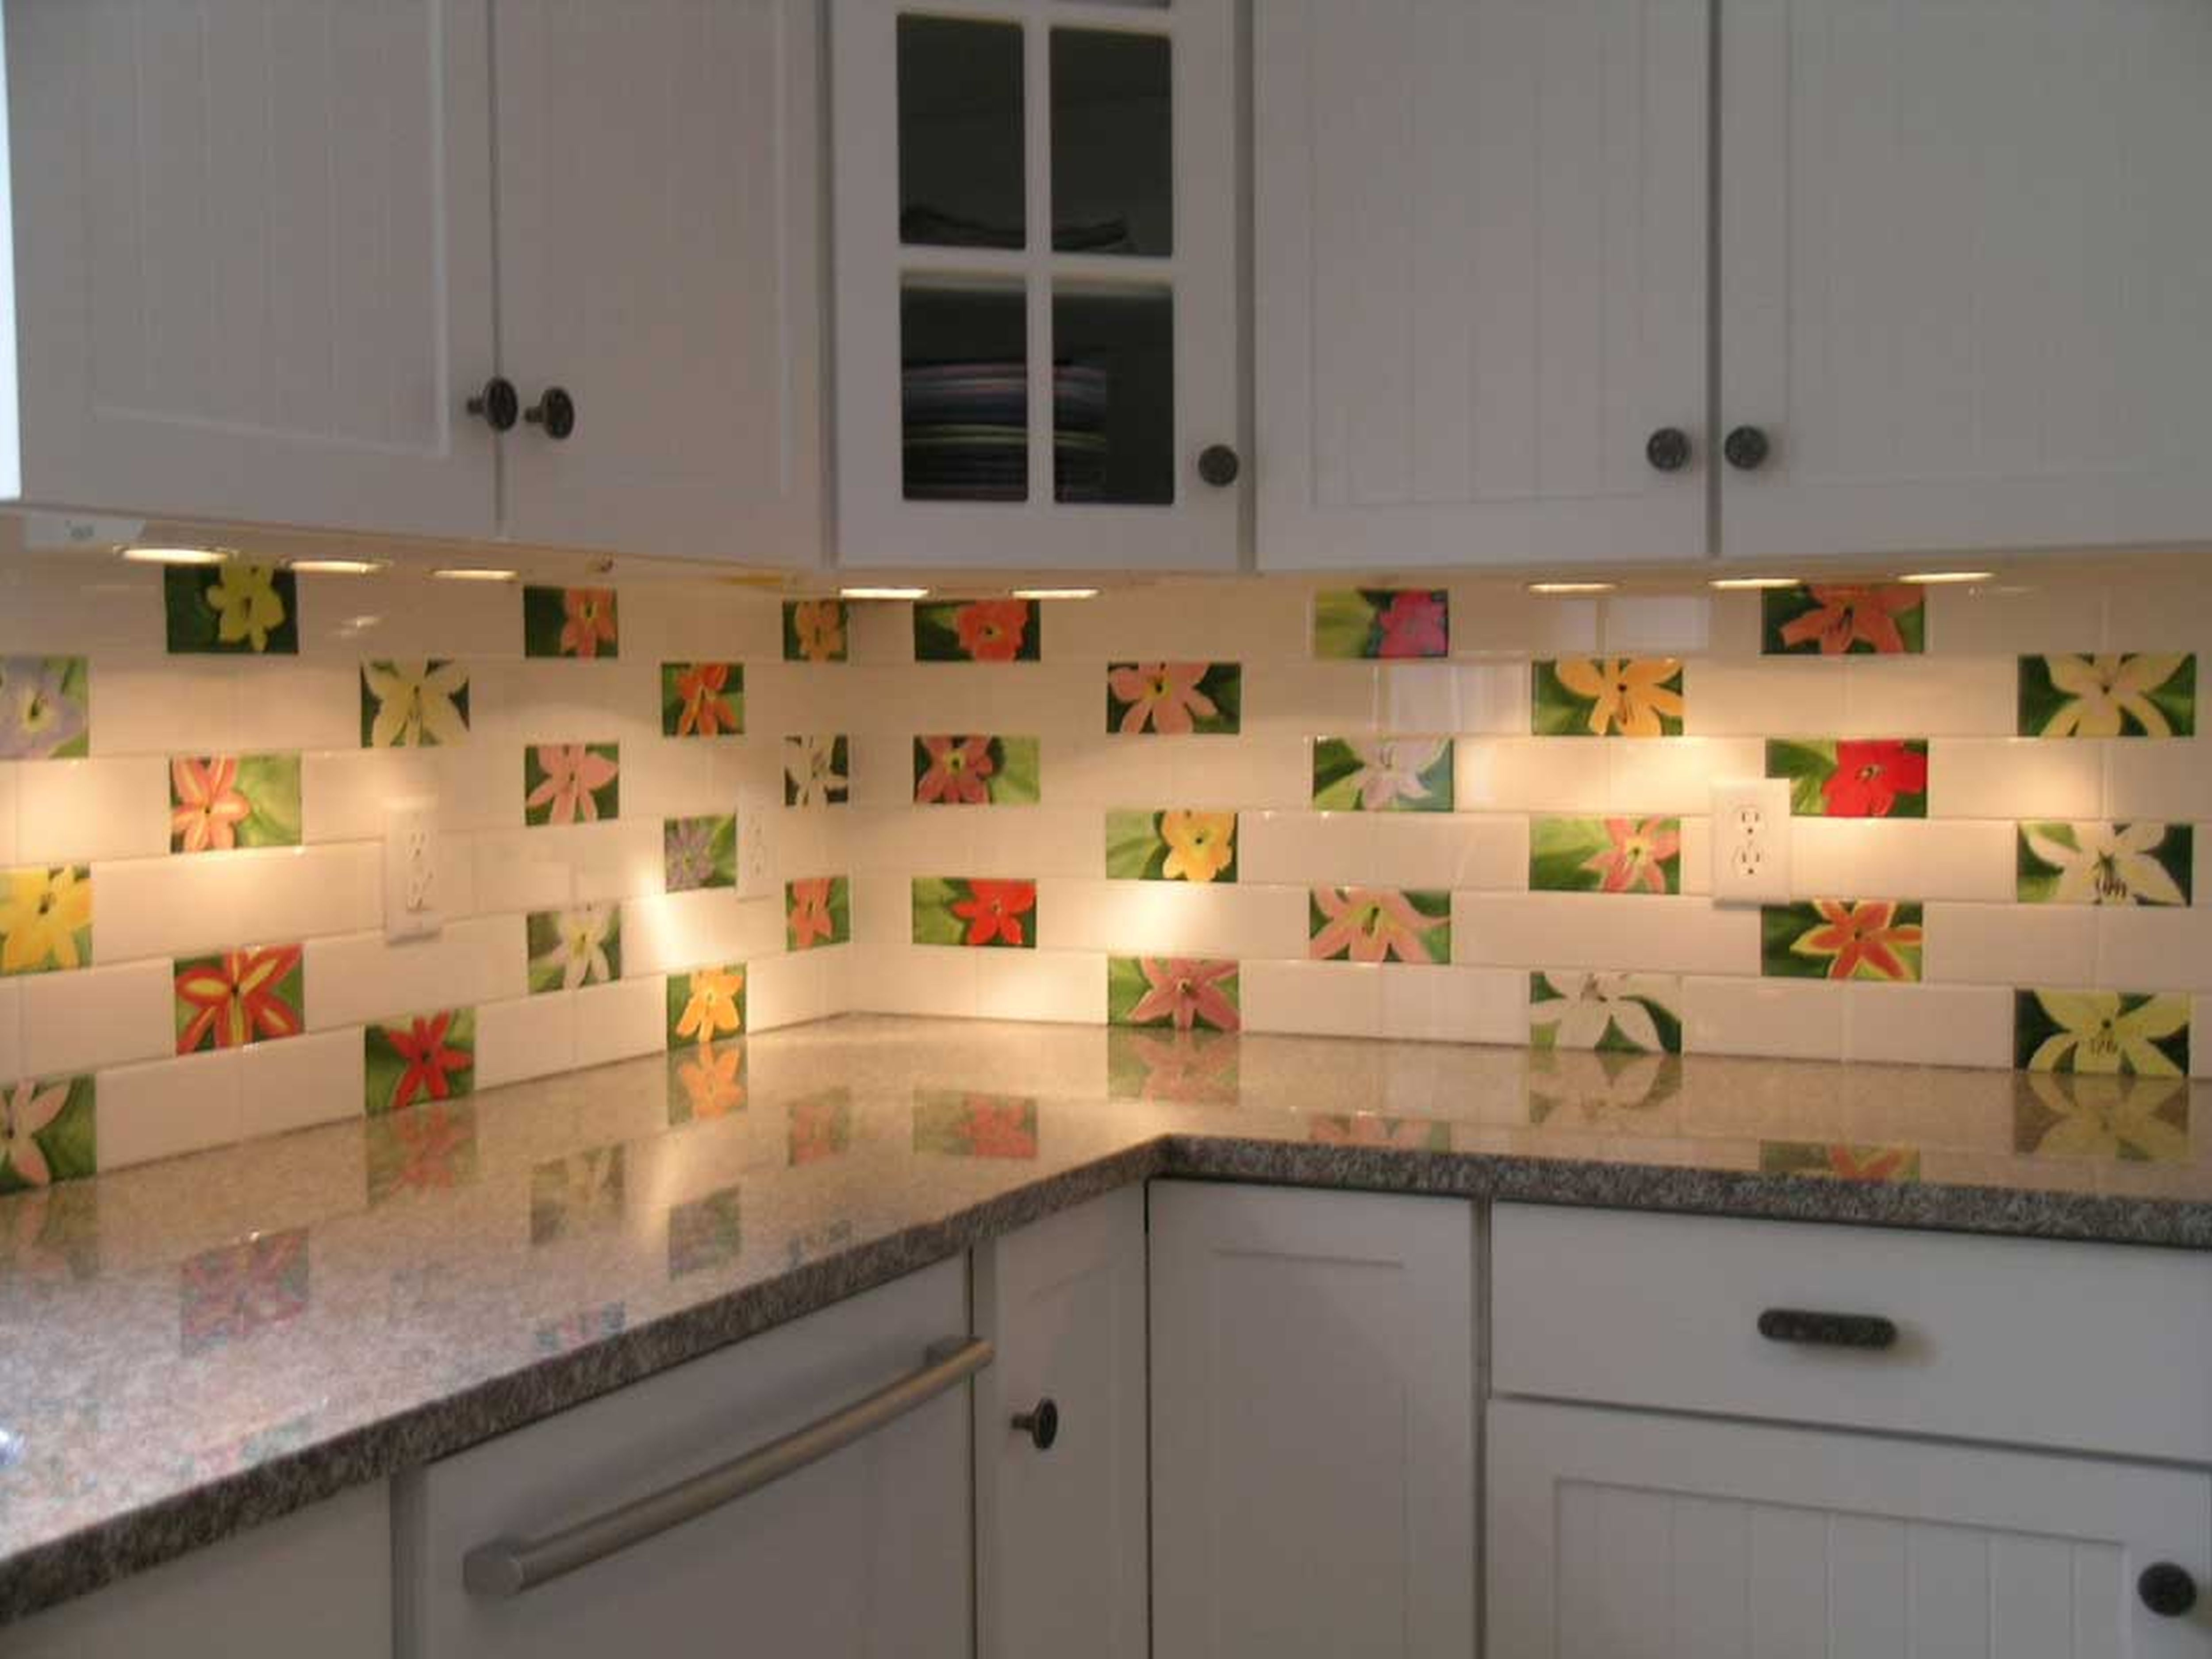 Chic Tiles In The Blink Of An Eye Kitchen Design Ideas